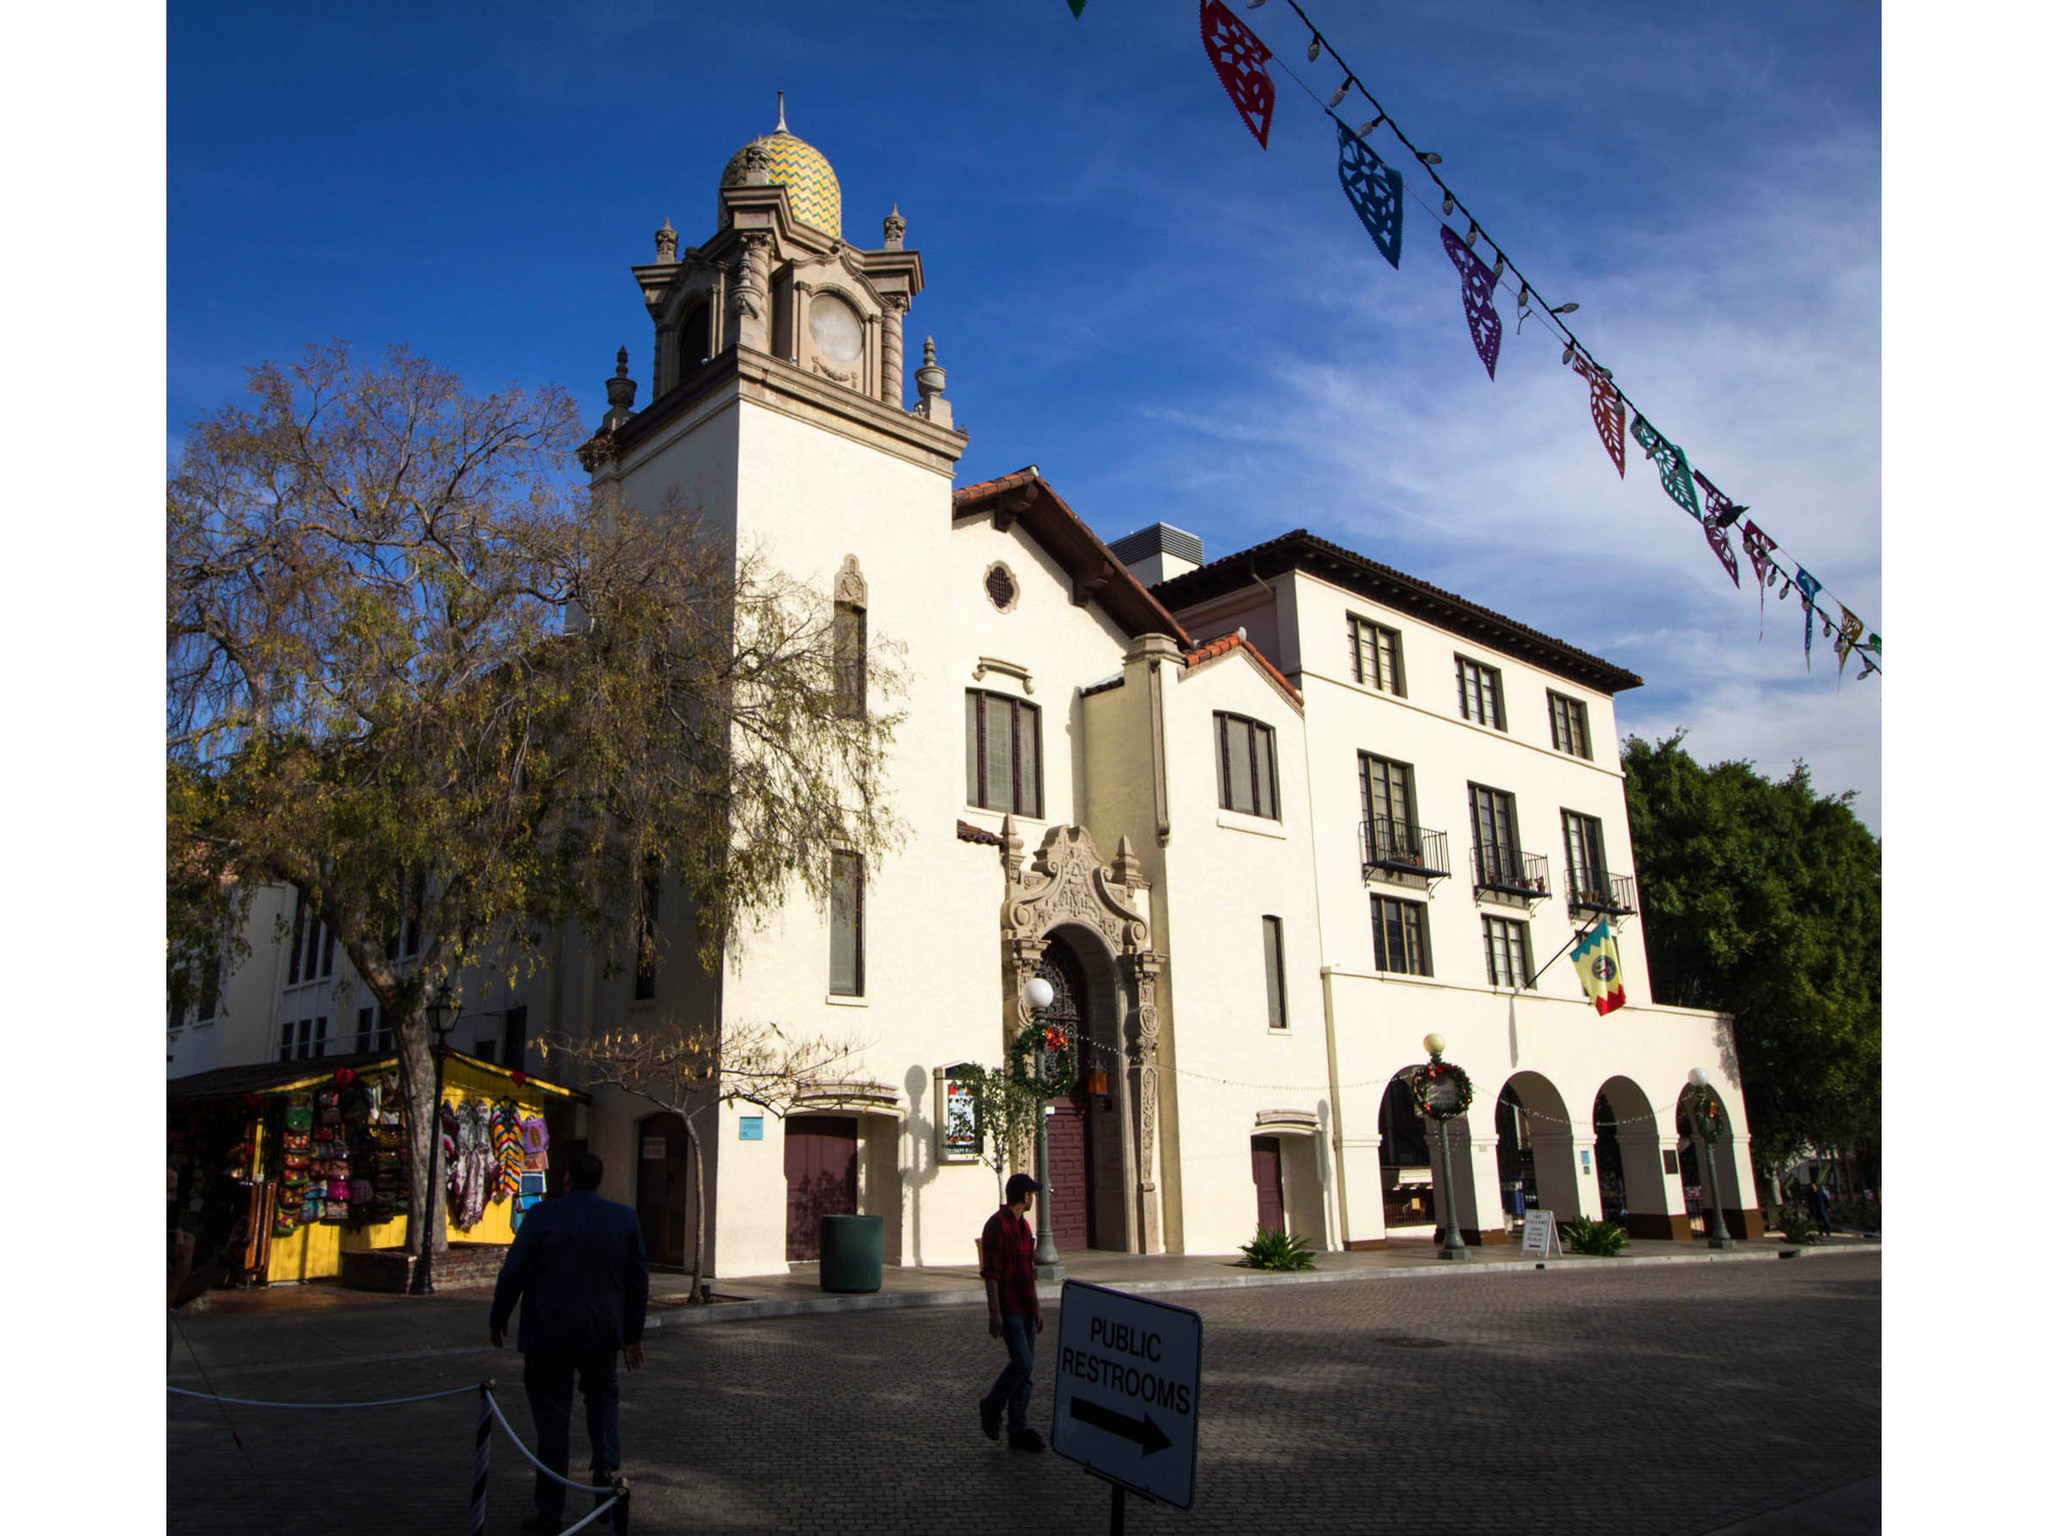 Dec. 9, 2015: The Plaza Methodist Church at Olvera Street in Los Angeles.